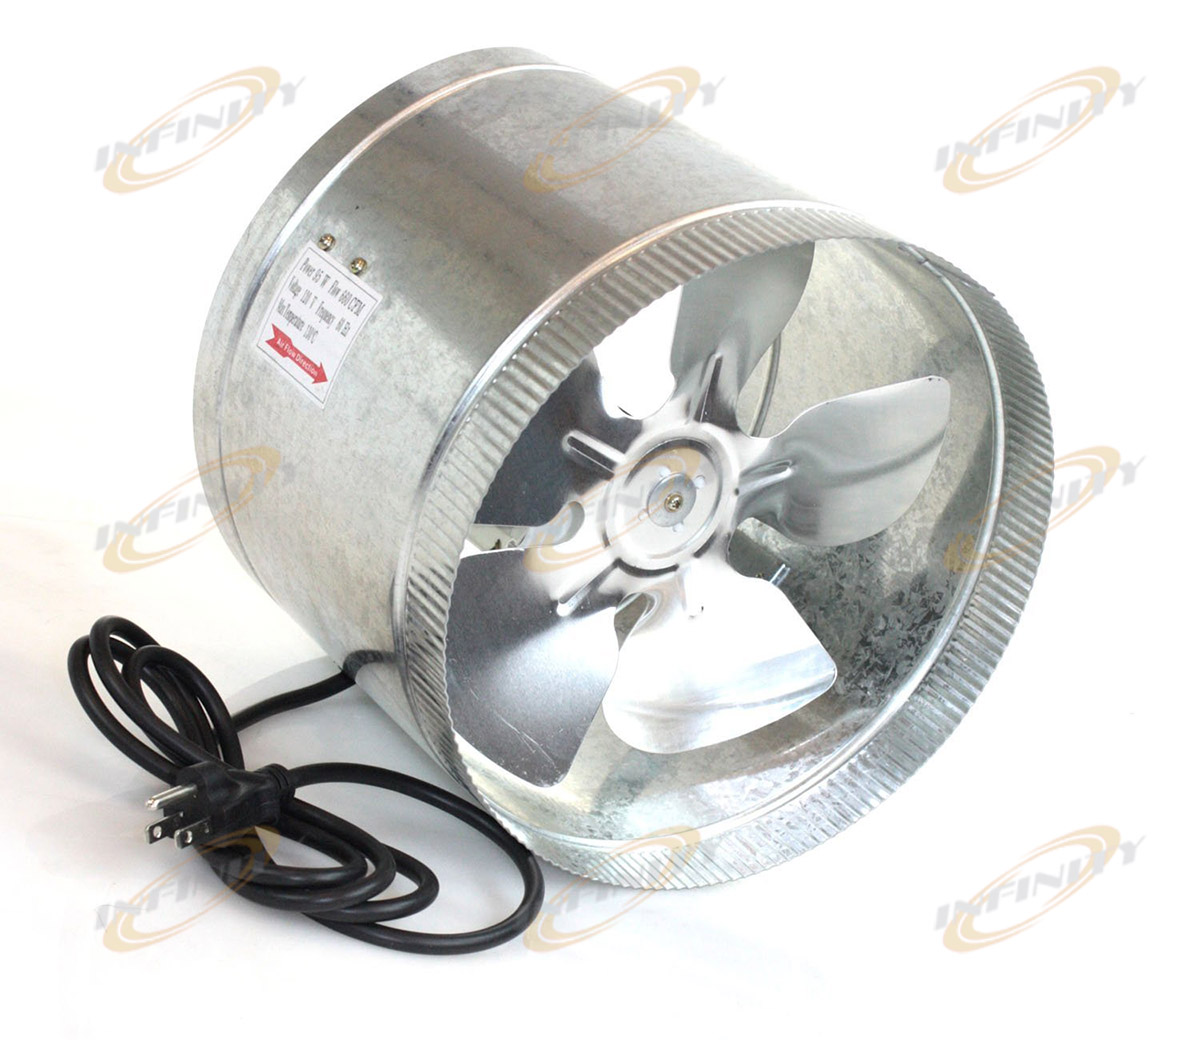 Air Vent Fans For Ducts : Quot in line duct fan cfm booster inline cool air